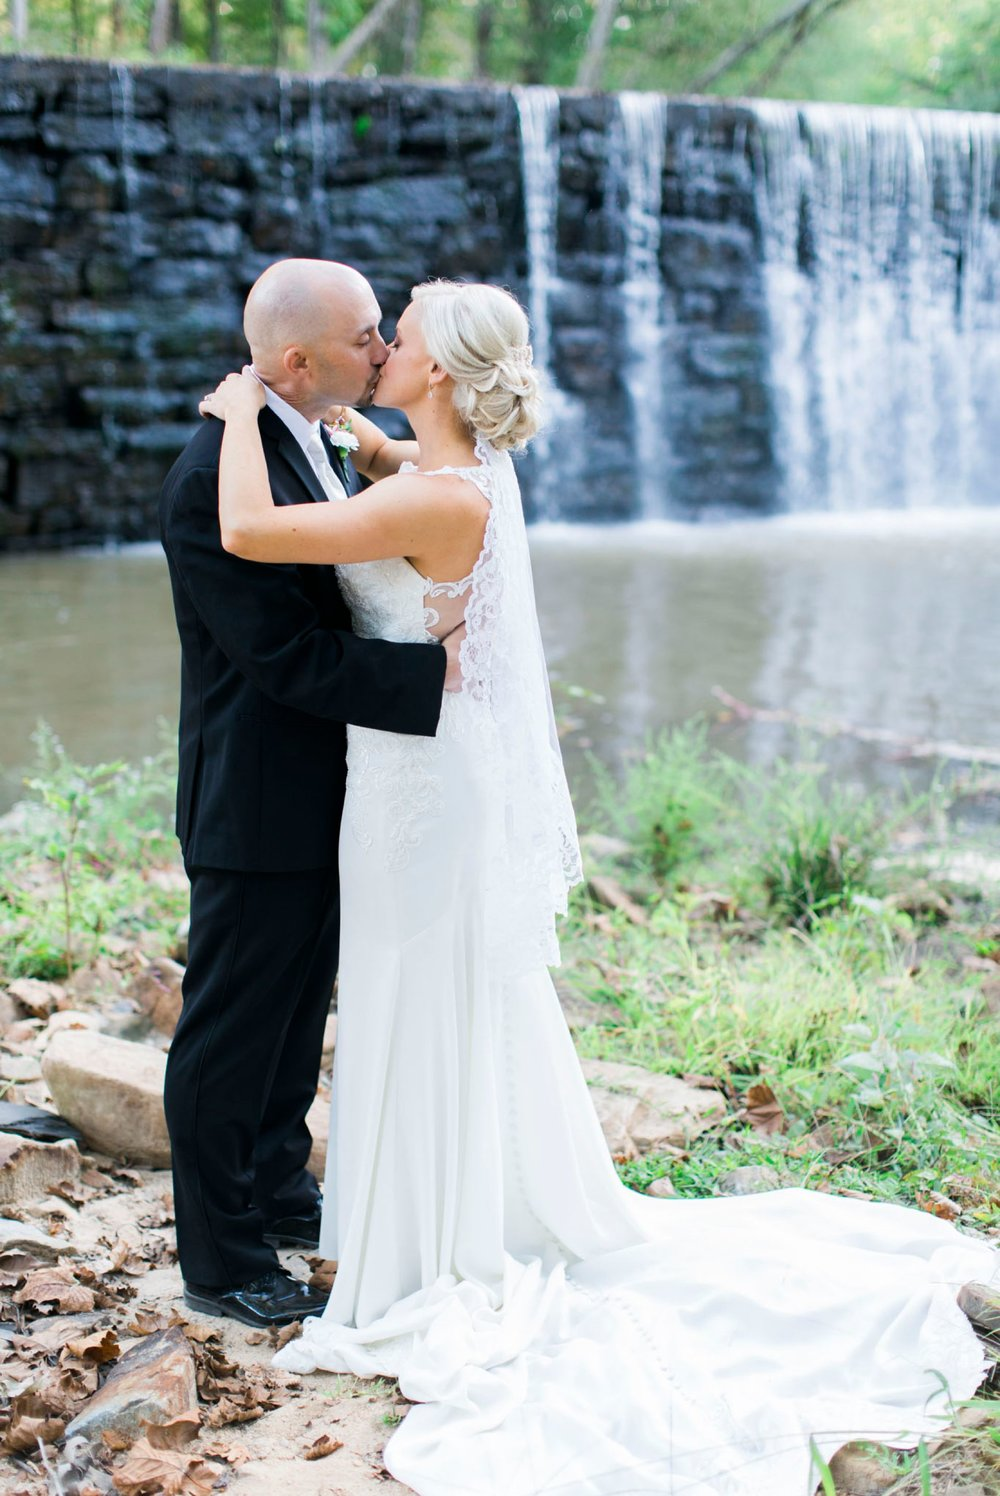 TheMillHouse_ChathamVA_WeddingPhotographer_VirginiaWeddingPhotographer_9.jpg 114.jpg